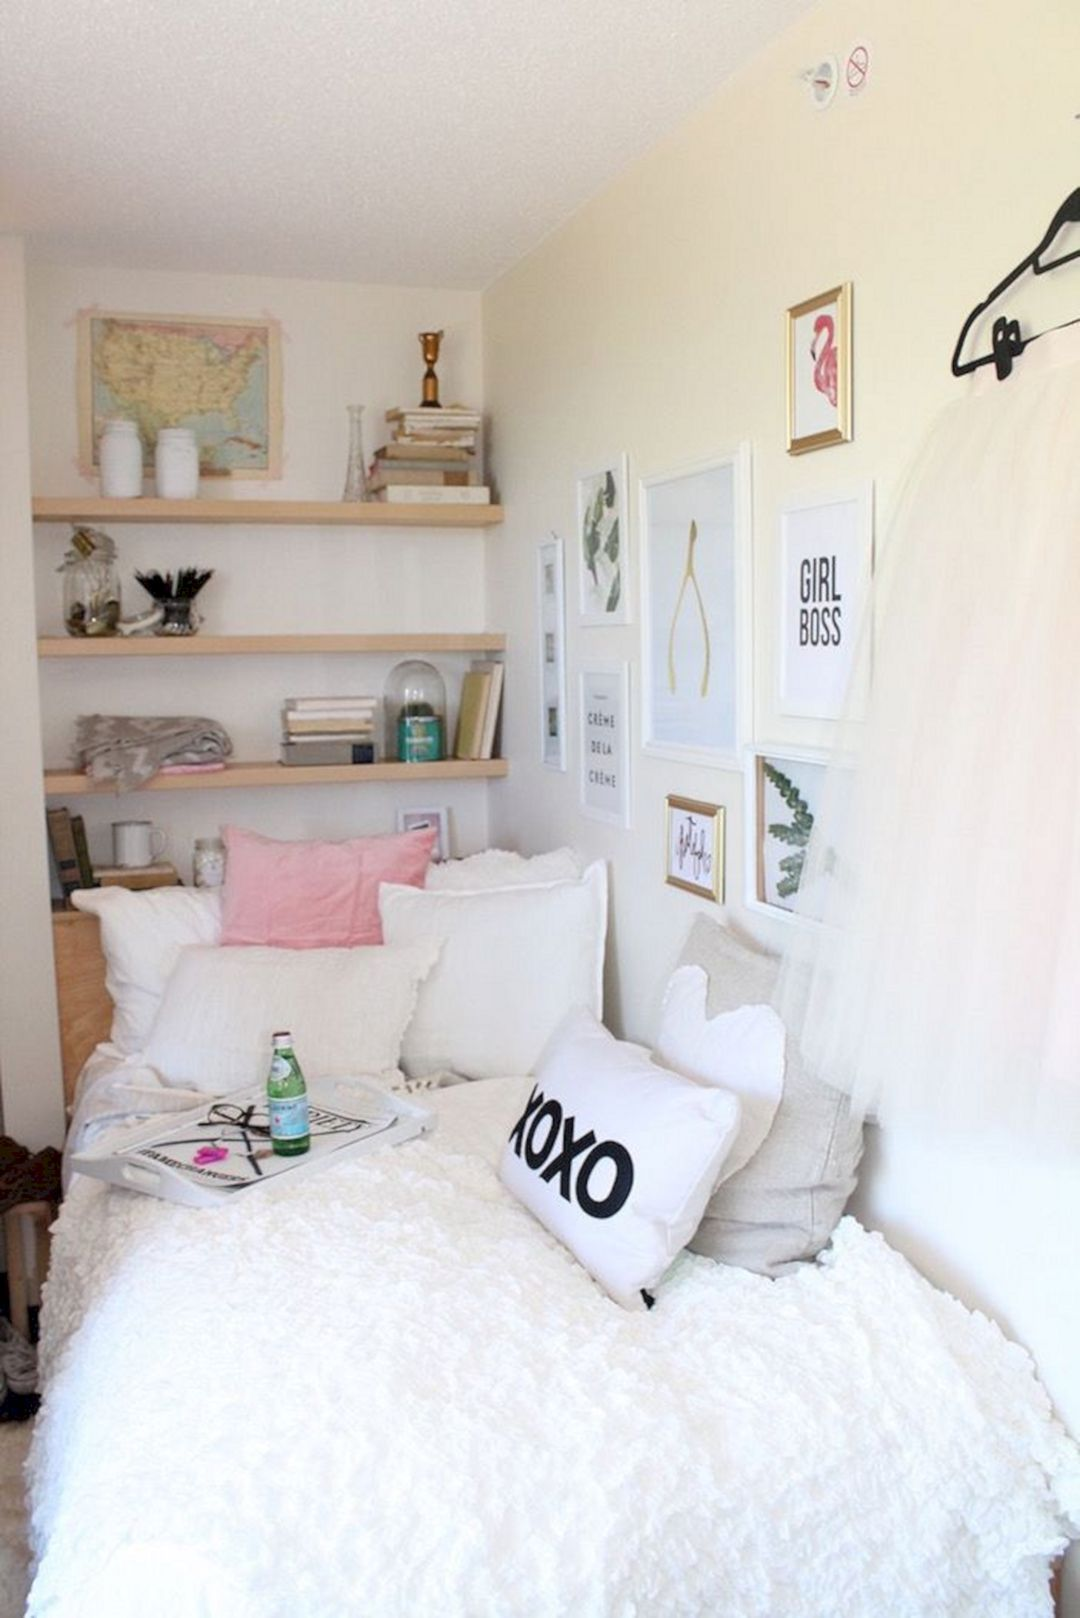 25 Best Small Room Design Ideas You